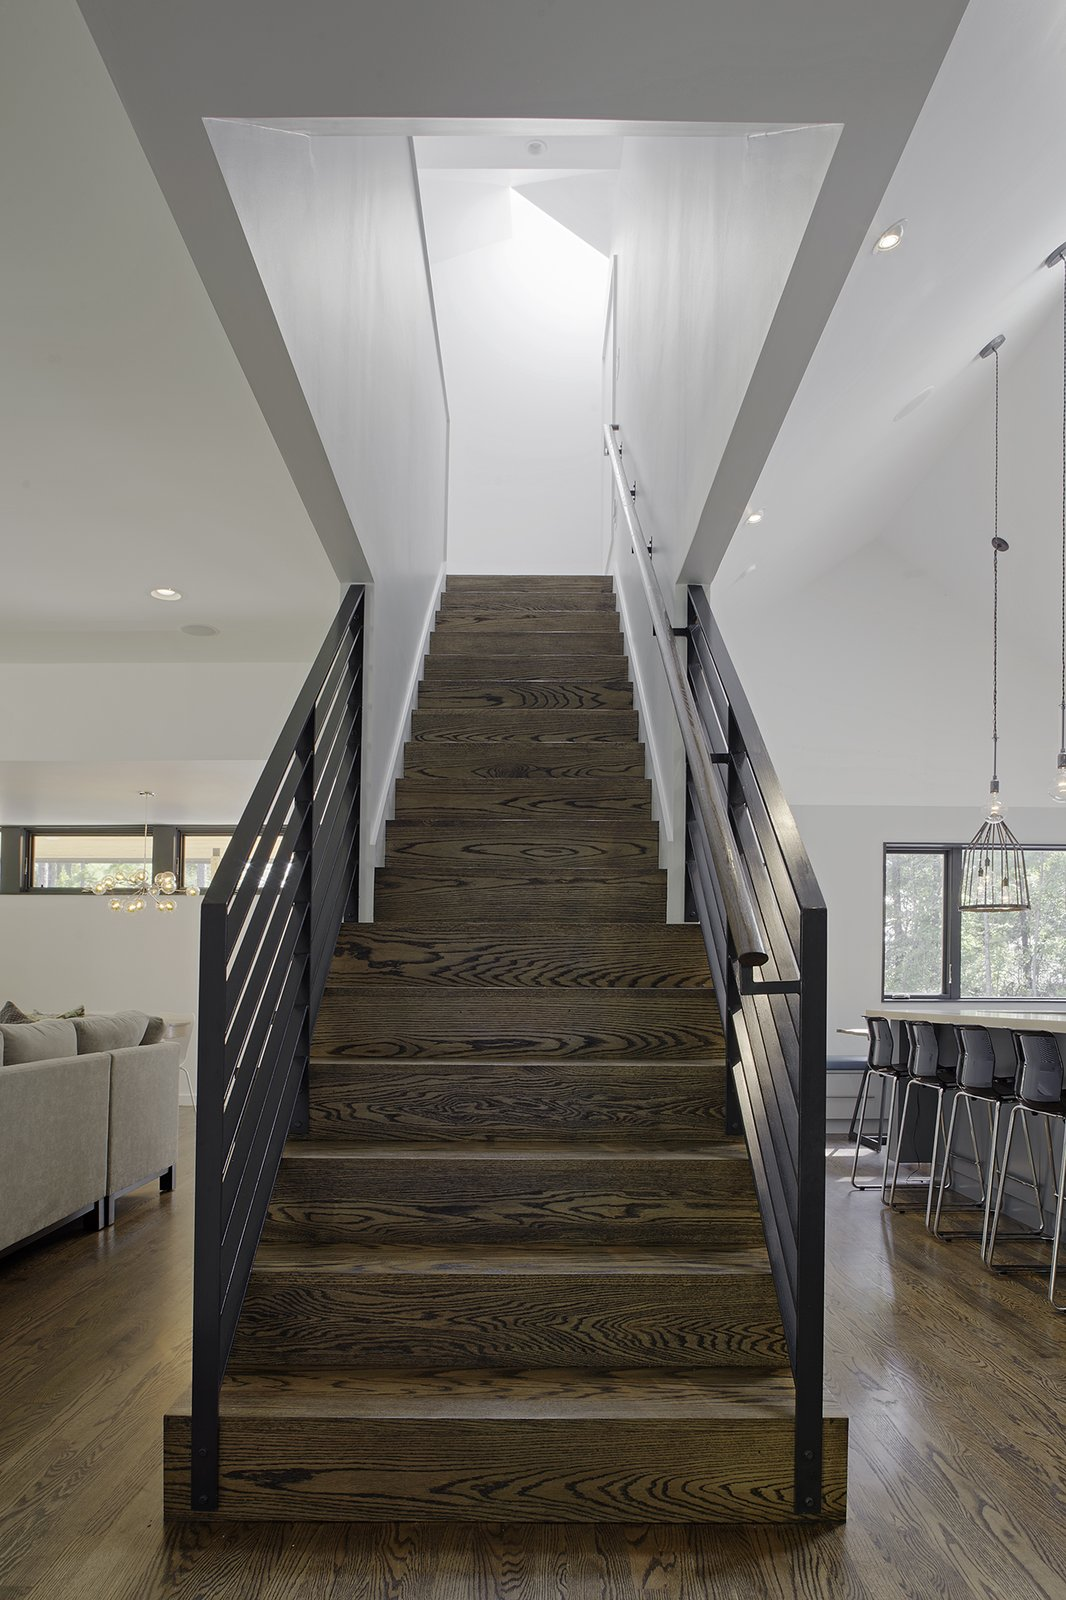 Stained oak flooring was used throughout the home's ground level, and continues up the main stairwell. Painted steel was used for the guardrails.  190+ Best Modern Staircase Ideas by Dwell from The Farmhouse